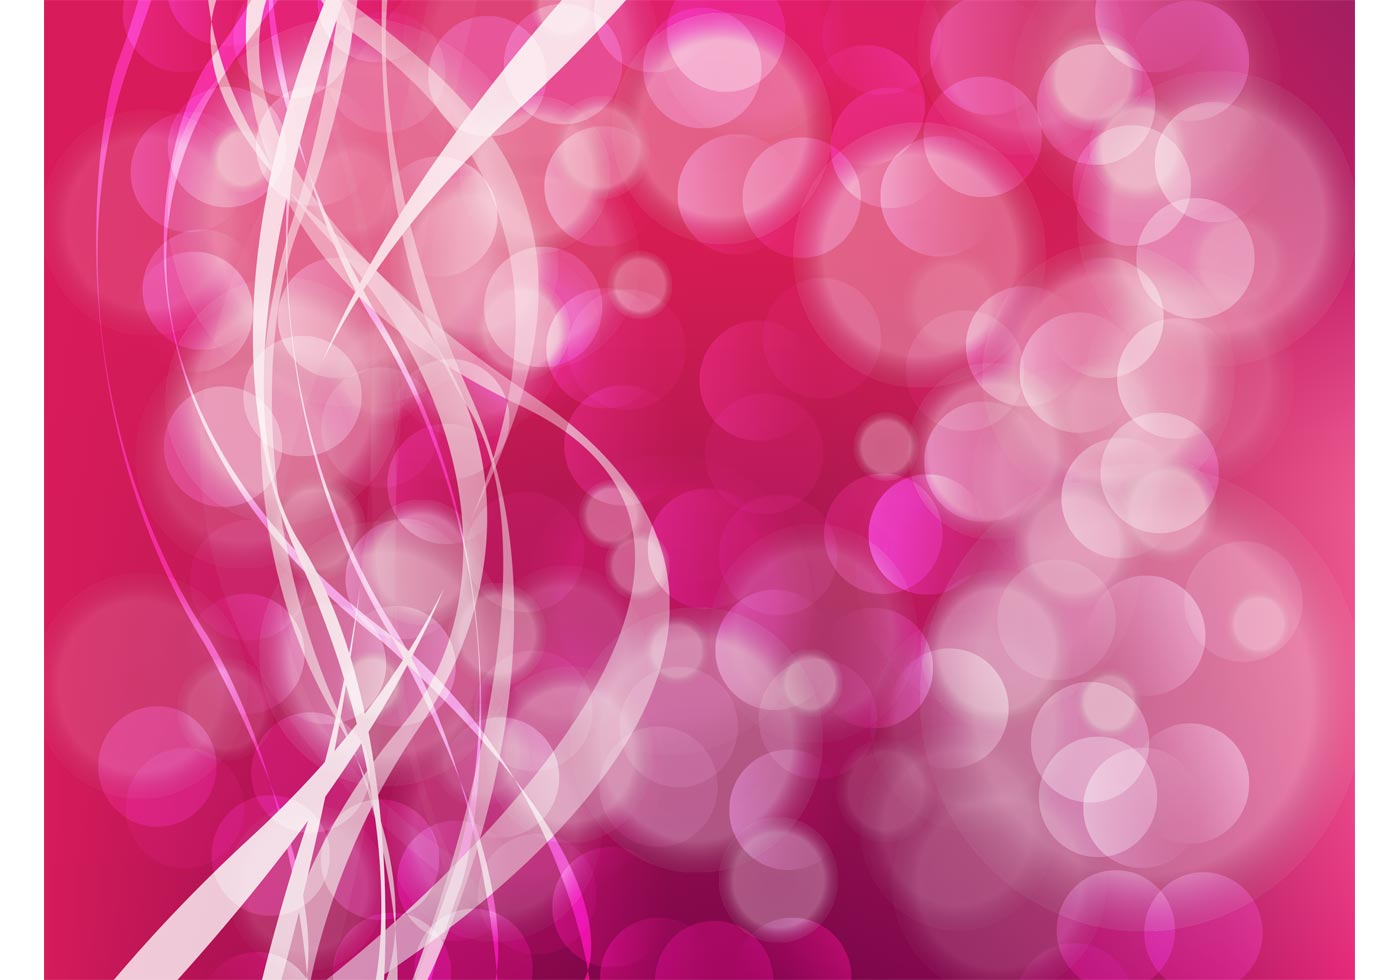 Pink Abstract Free Vector Art